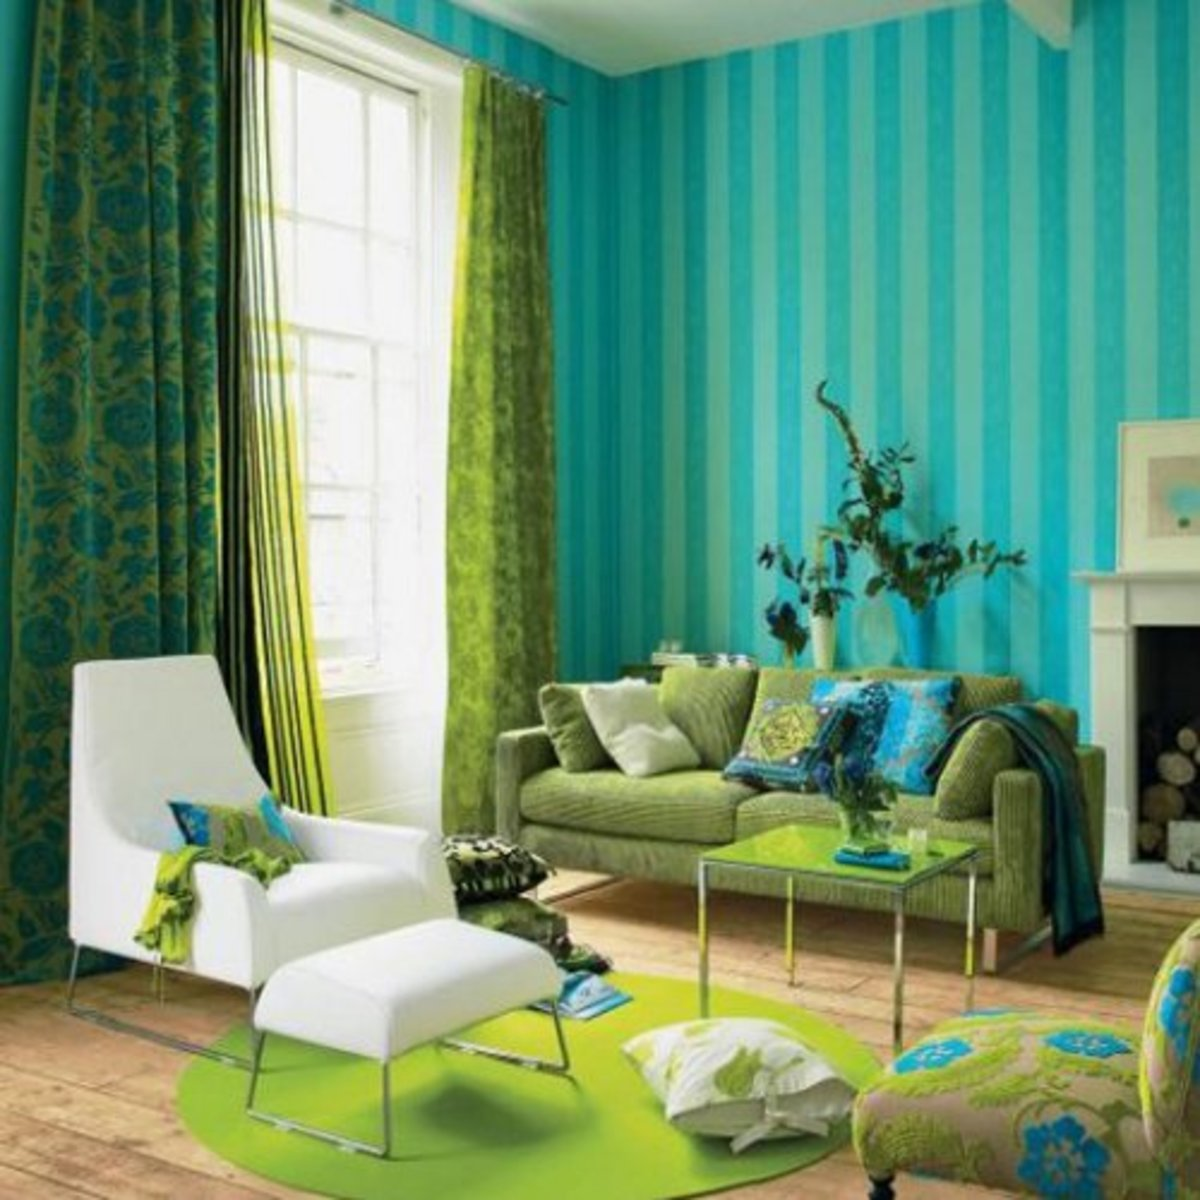 DIY Decorating Ideas For Lime Green, Apple Green, And